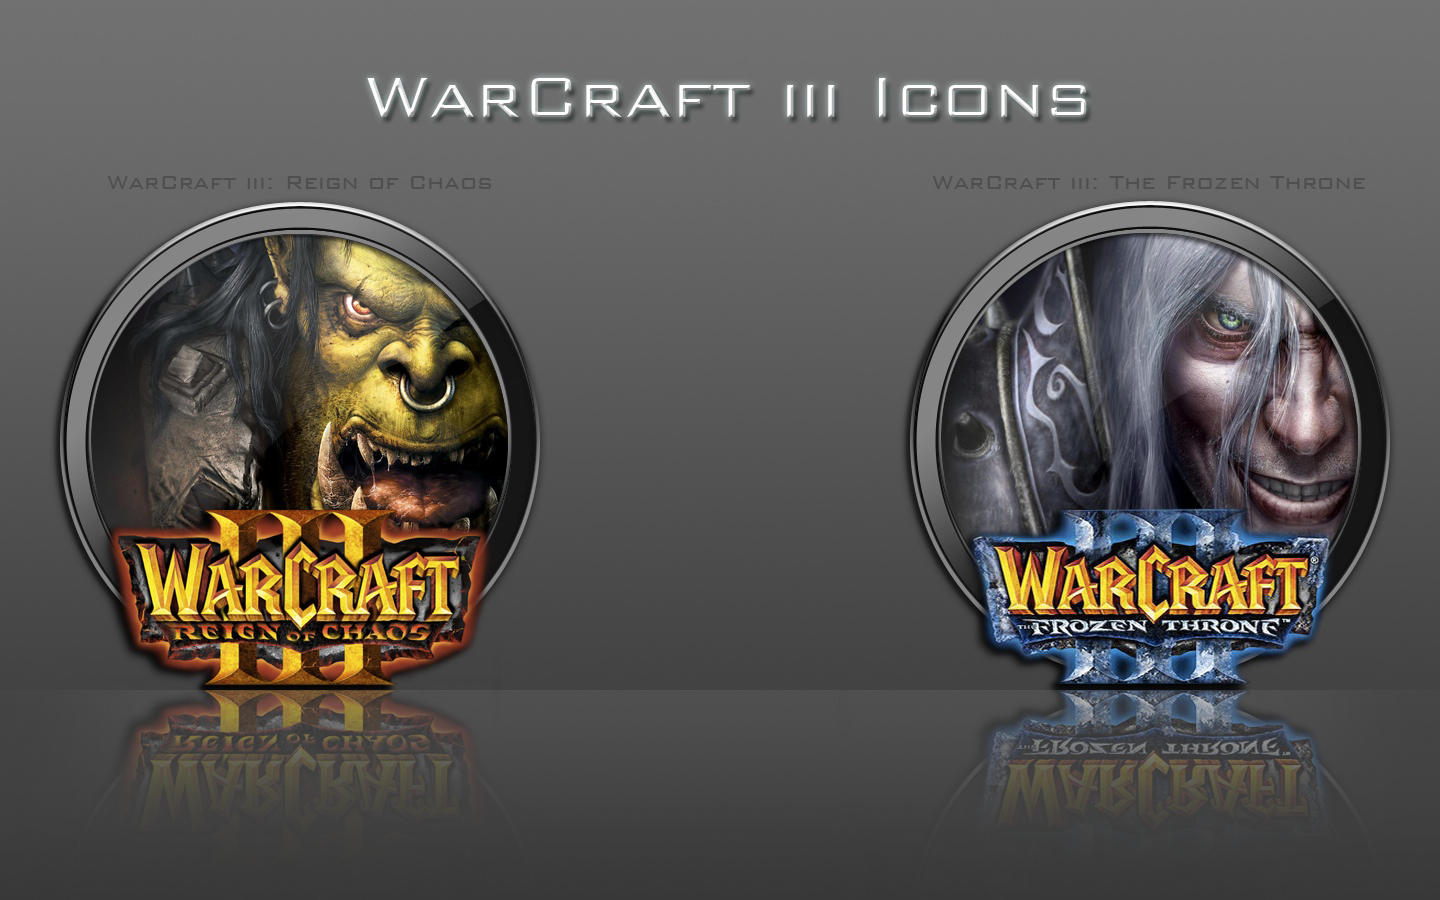 Station portable (psp) firmware 6 starcraft 15: fusion is a series of totally converted warcraft iii custom maps